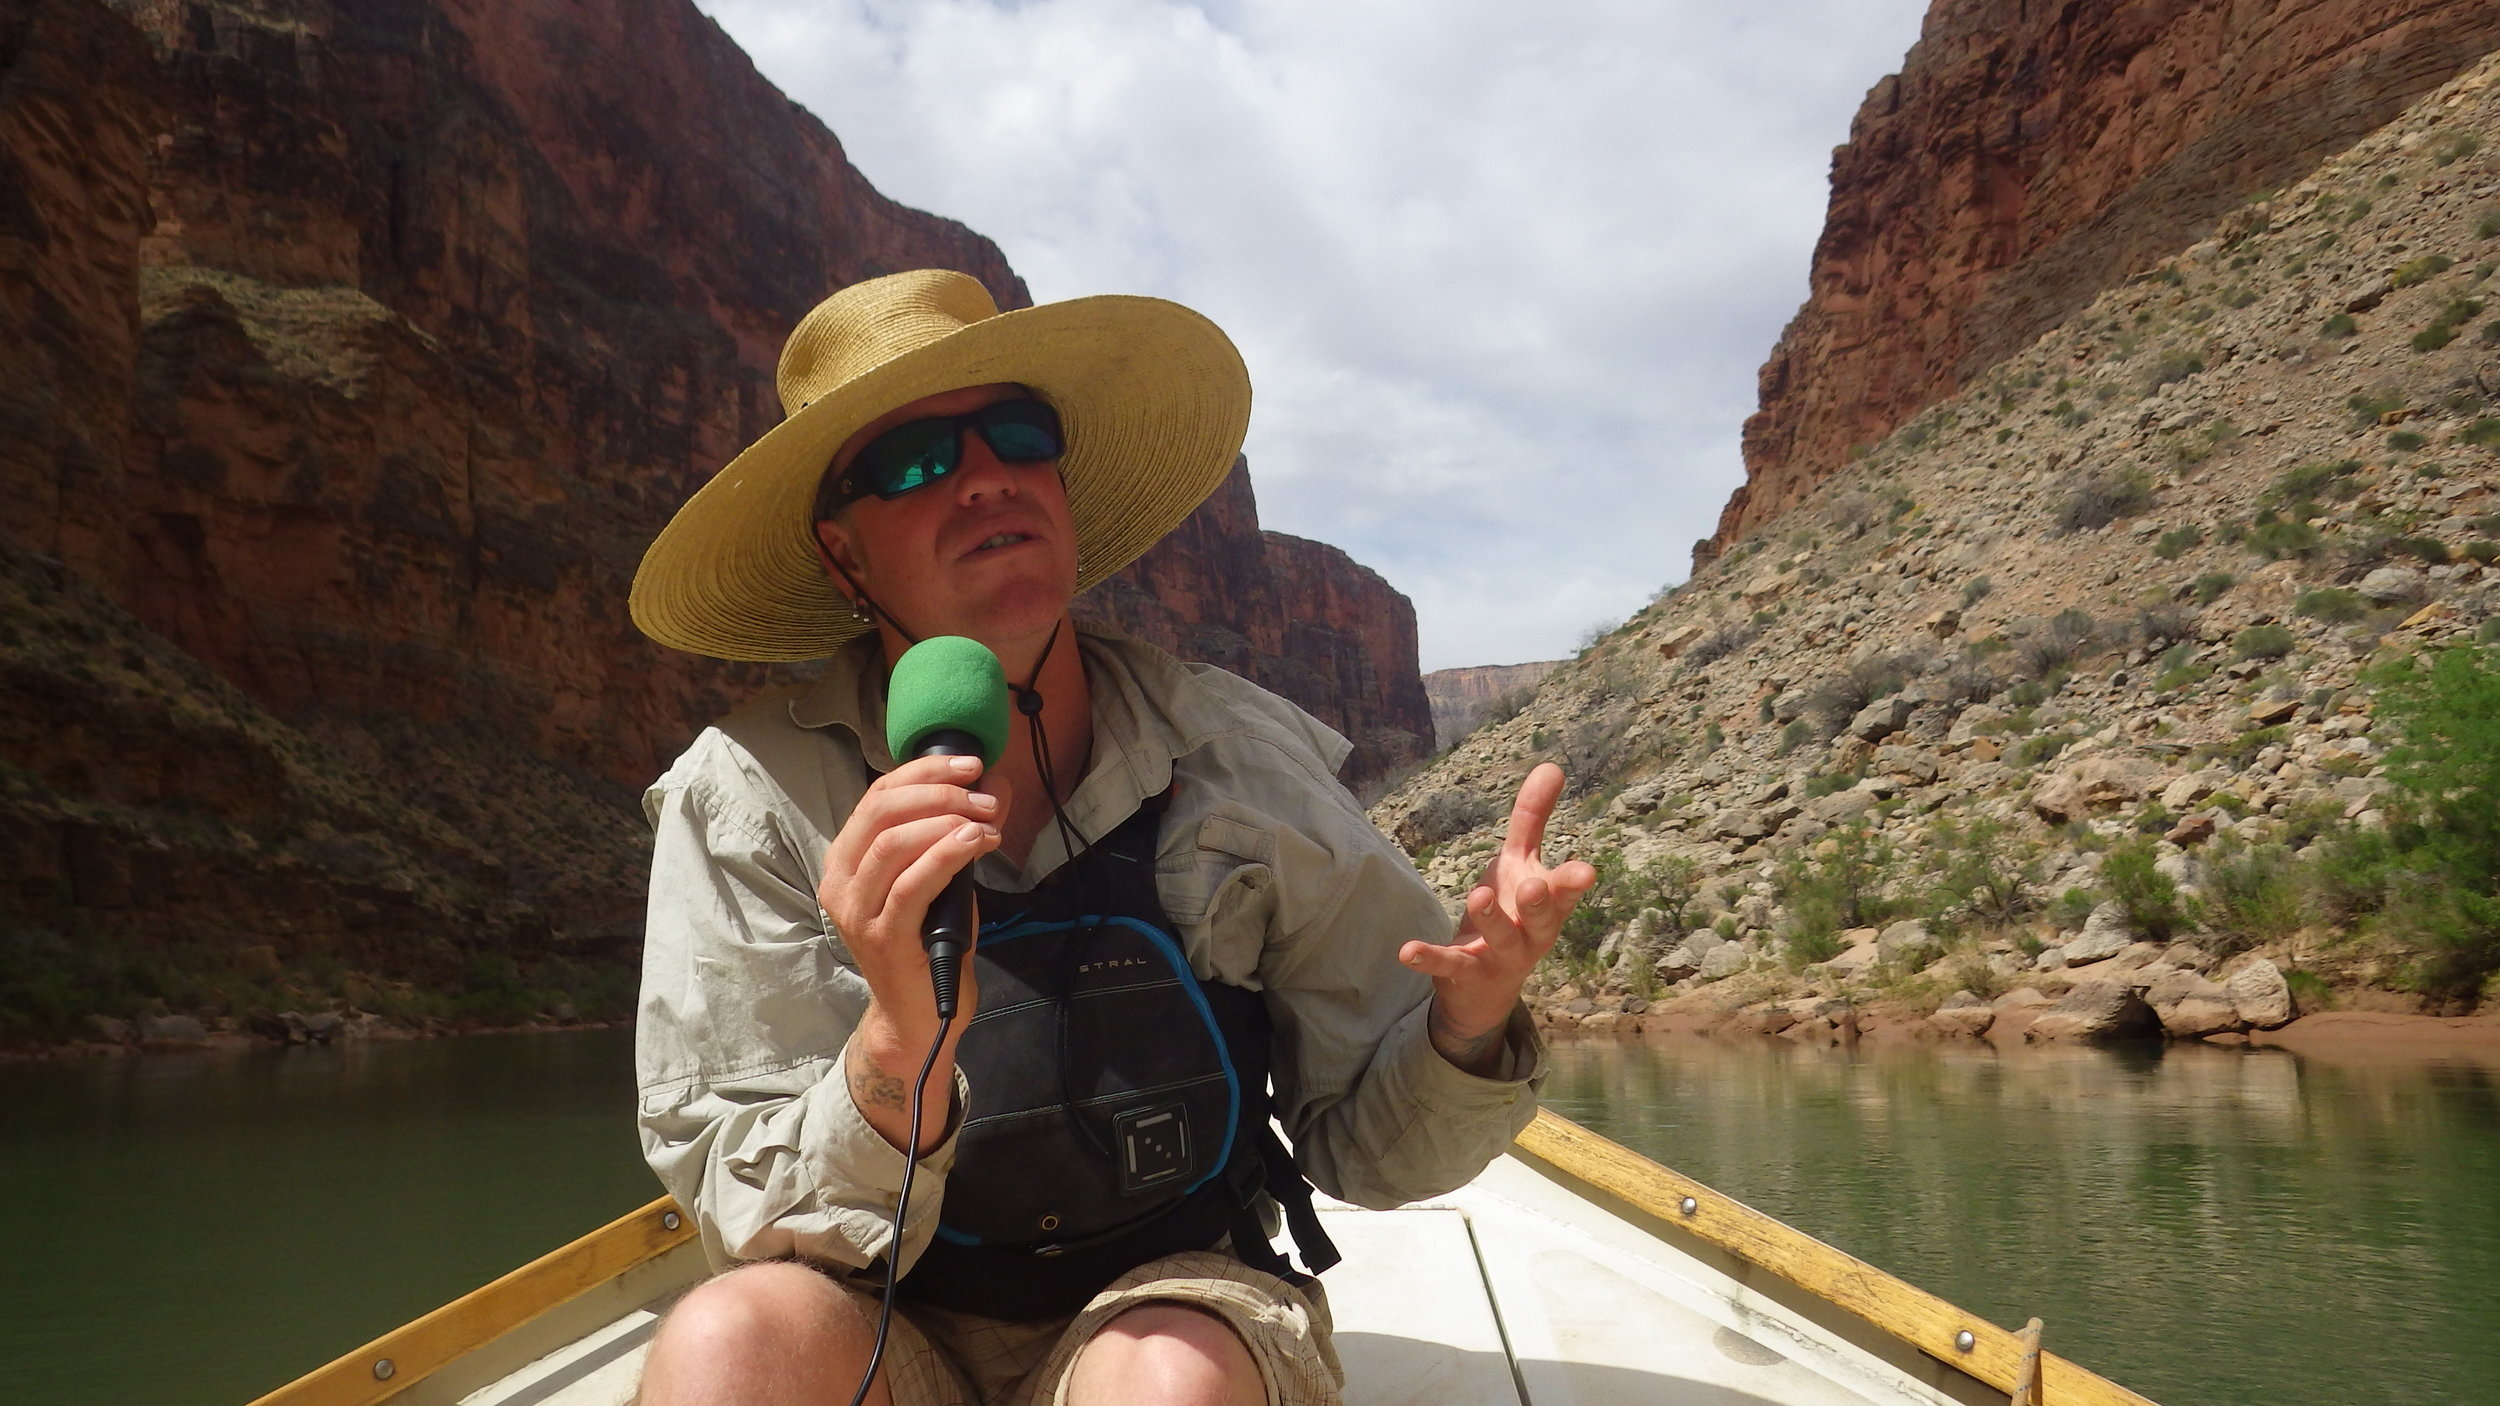 Recorded in a dory floating down the Colorado River in the Grand Canyon! Mandela's interviews Liam O'Neil. Liam grew up in the boathouse of his father's raft company & now works as a talented doryman, raft guide & kayak guide in the Grand Canyon, Lochsa & other rivers around America's northwest.